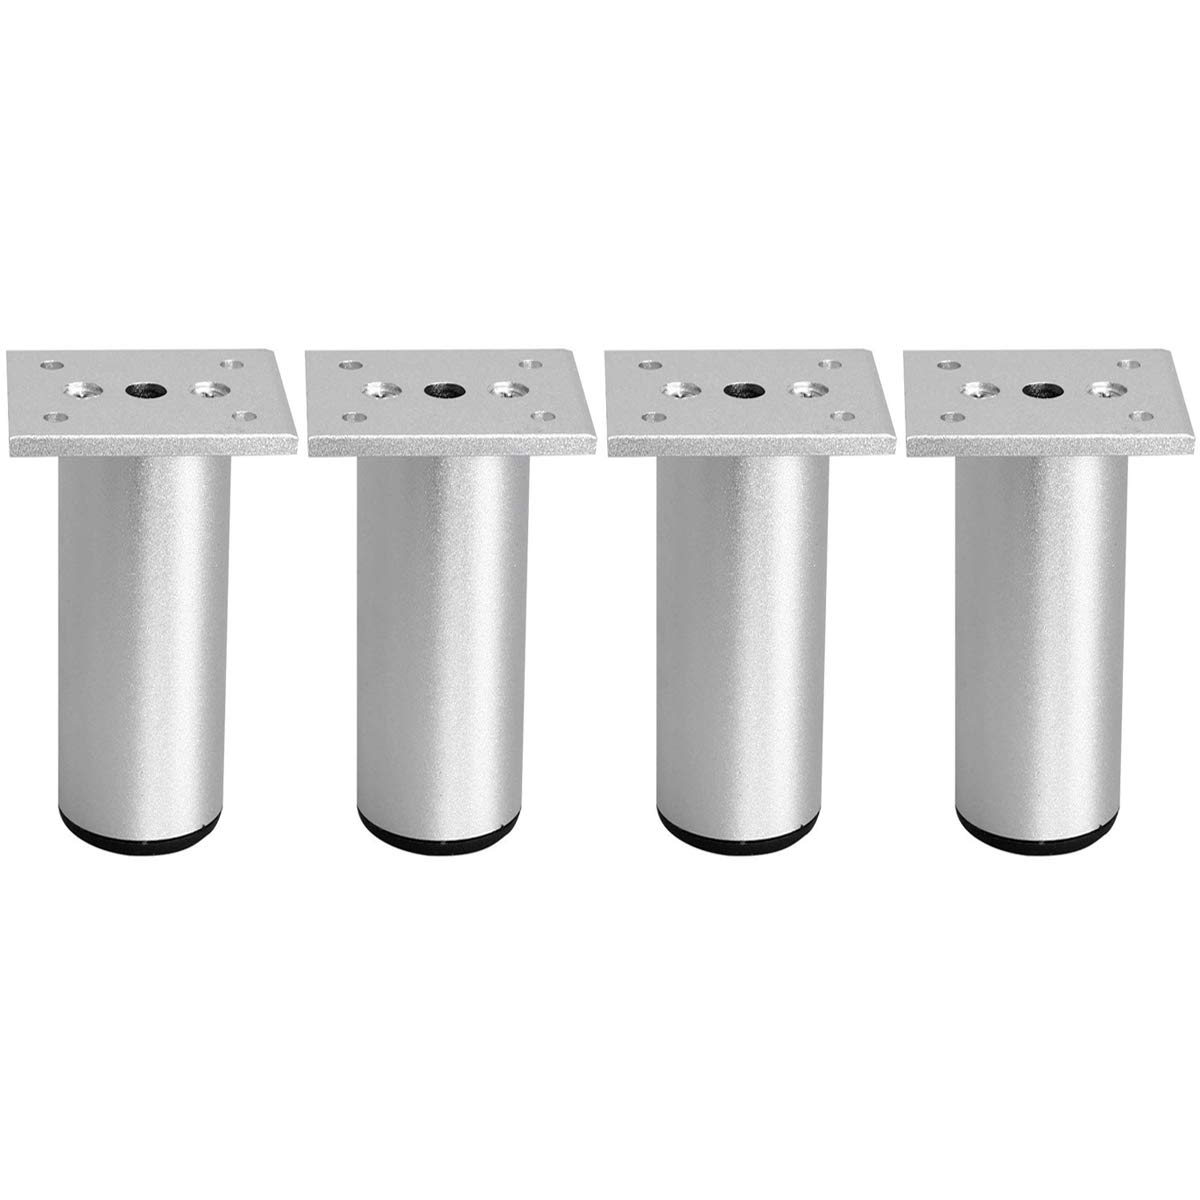 6 inch / 15cm Furniture Legs, La Vane Set of 4 Aluminium Plinth Adjustable Cabinet Feet for Cupboard Sofa Kitchen Couch Bookcase